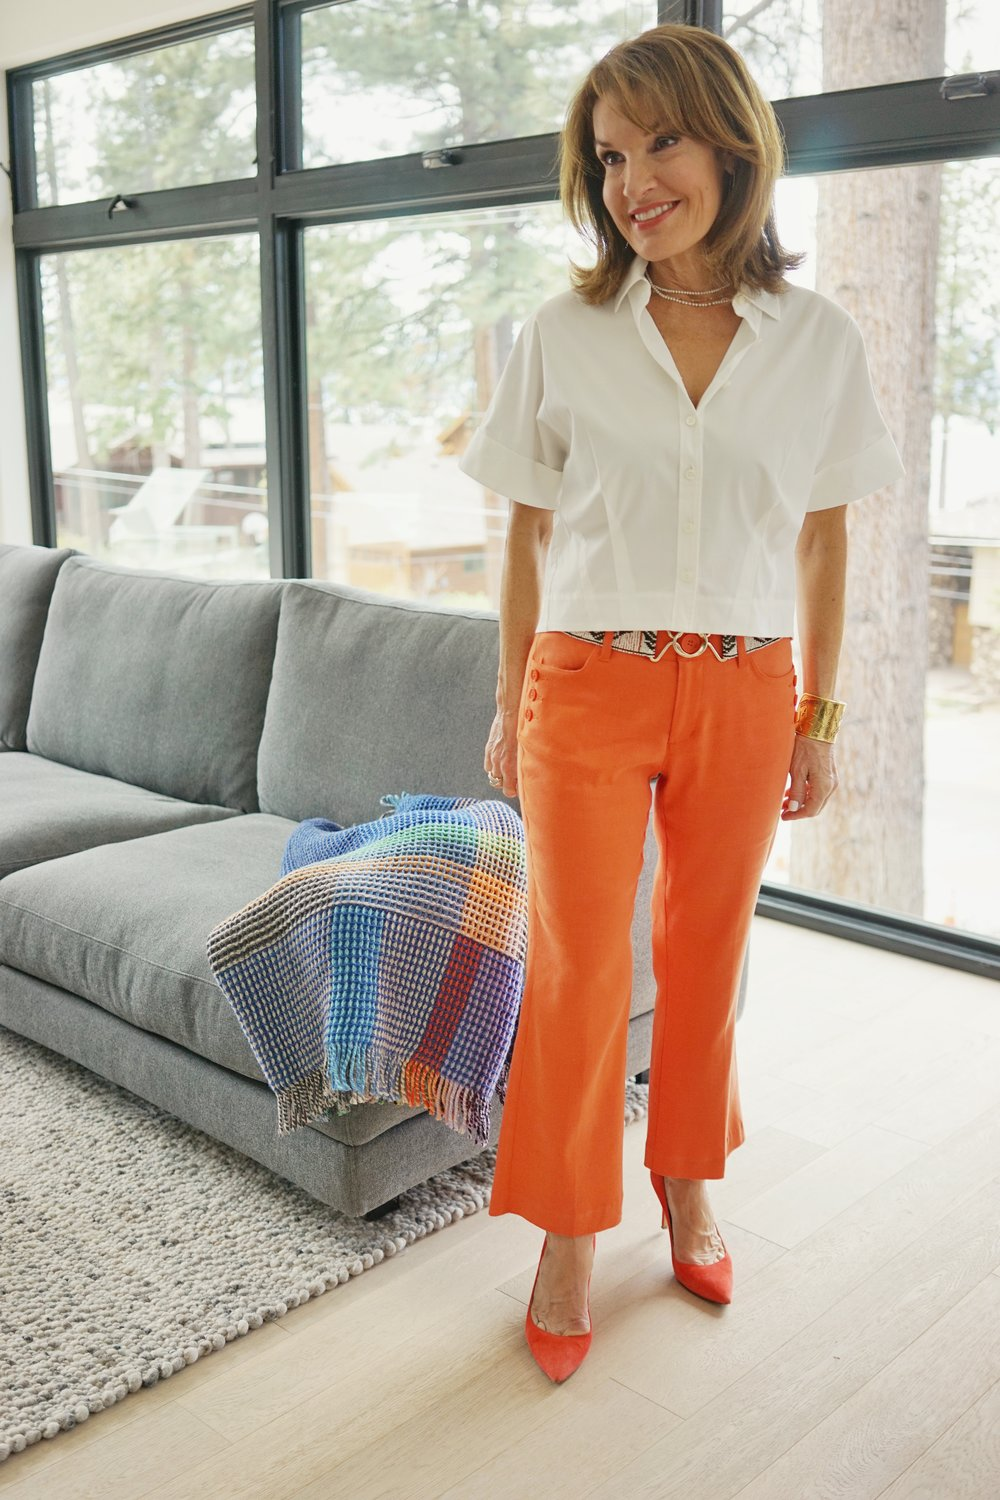 Theory blouse   , Sandro belt,    Cabi pants   , Gianvanito Rossi shoes,    similar here